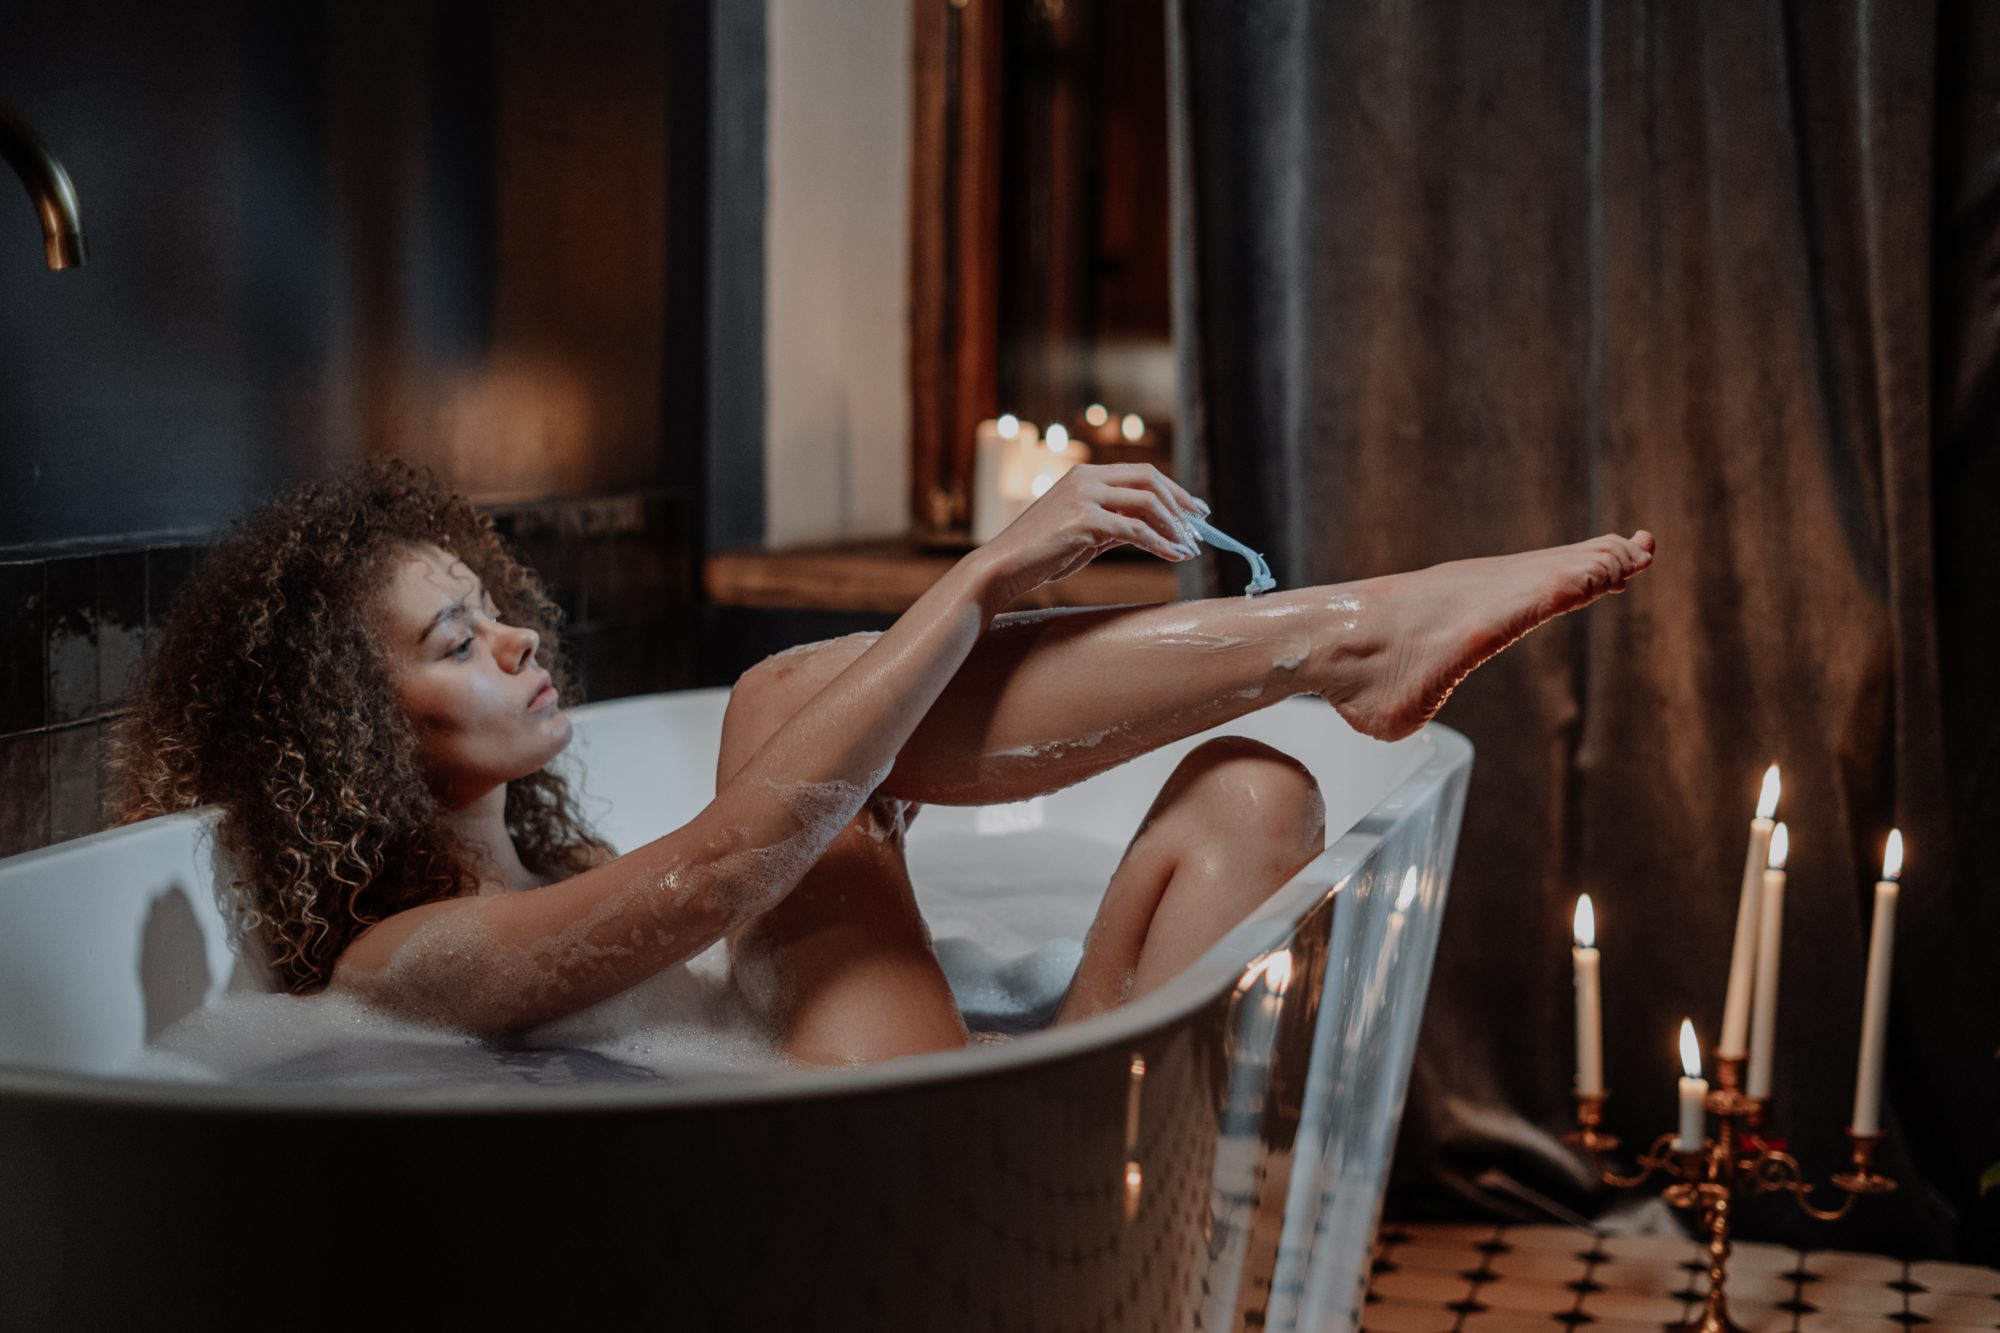 Spa Days. We Miss You! Create One In Your Own Tub